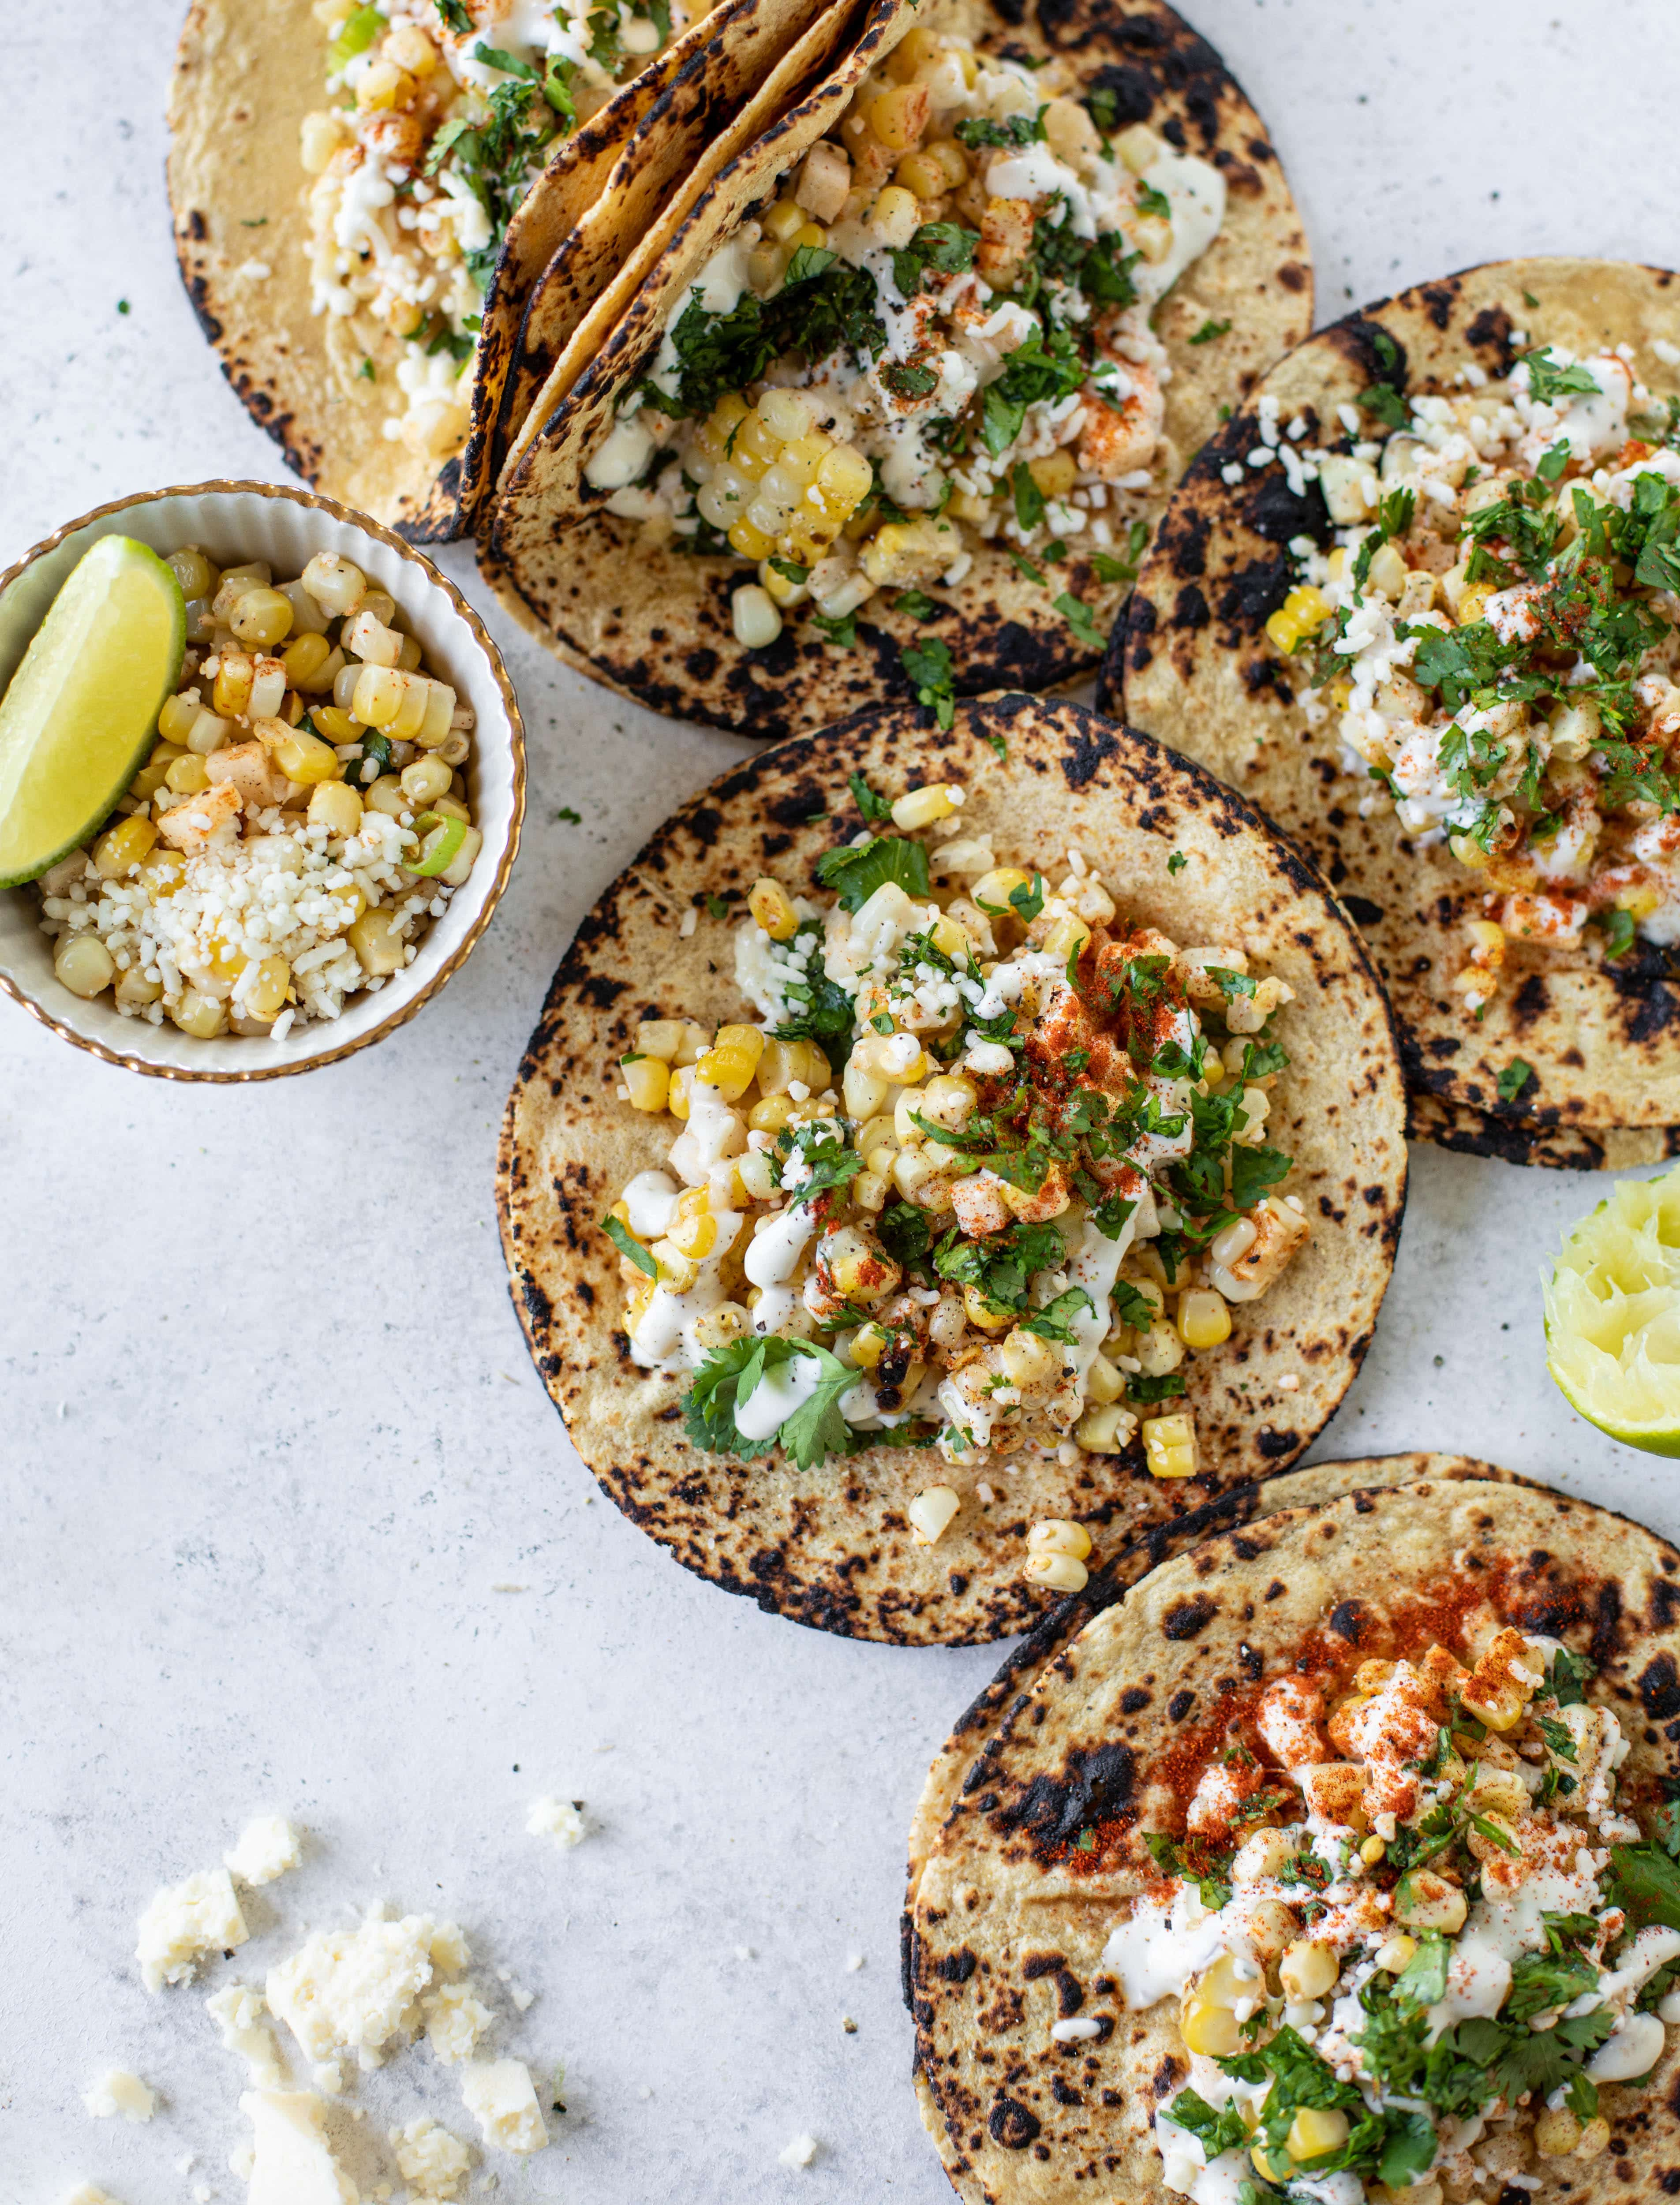 These street corn tacos are filled with a jicama corn salad and drizzled with garlic mayo. This little taco packs a major flavor punch.